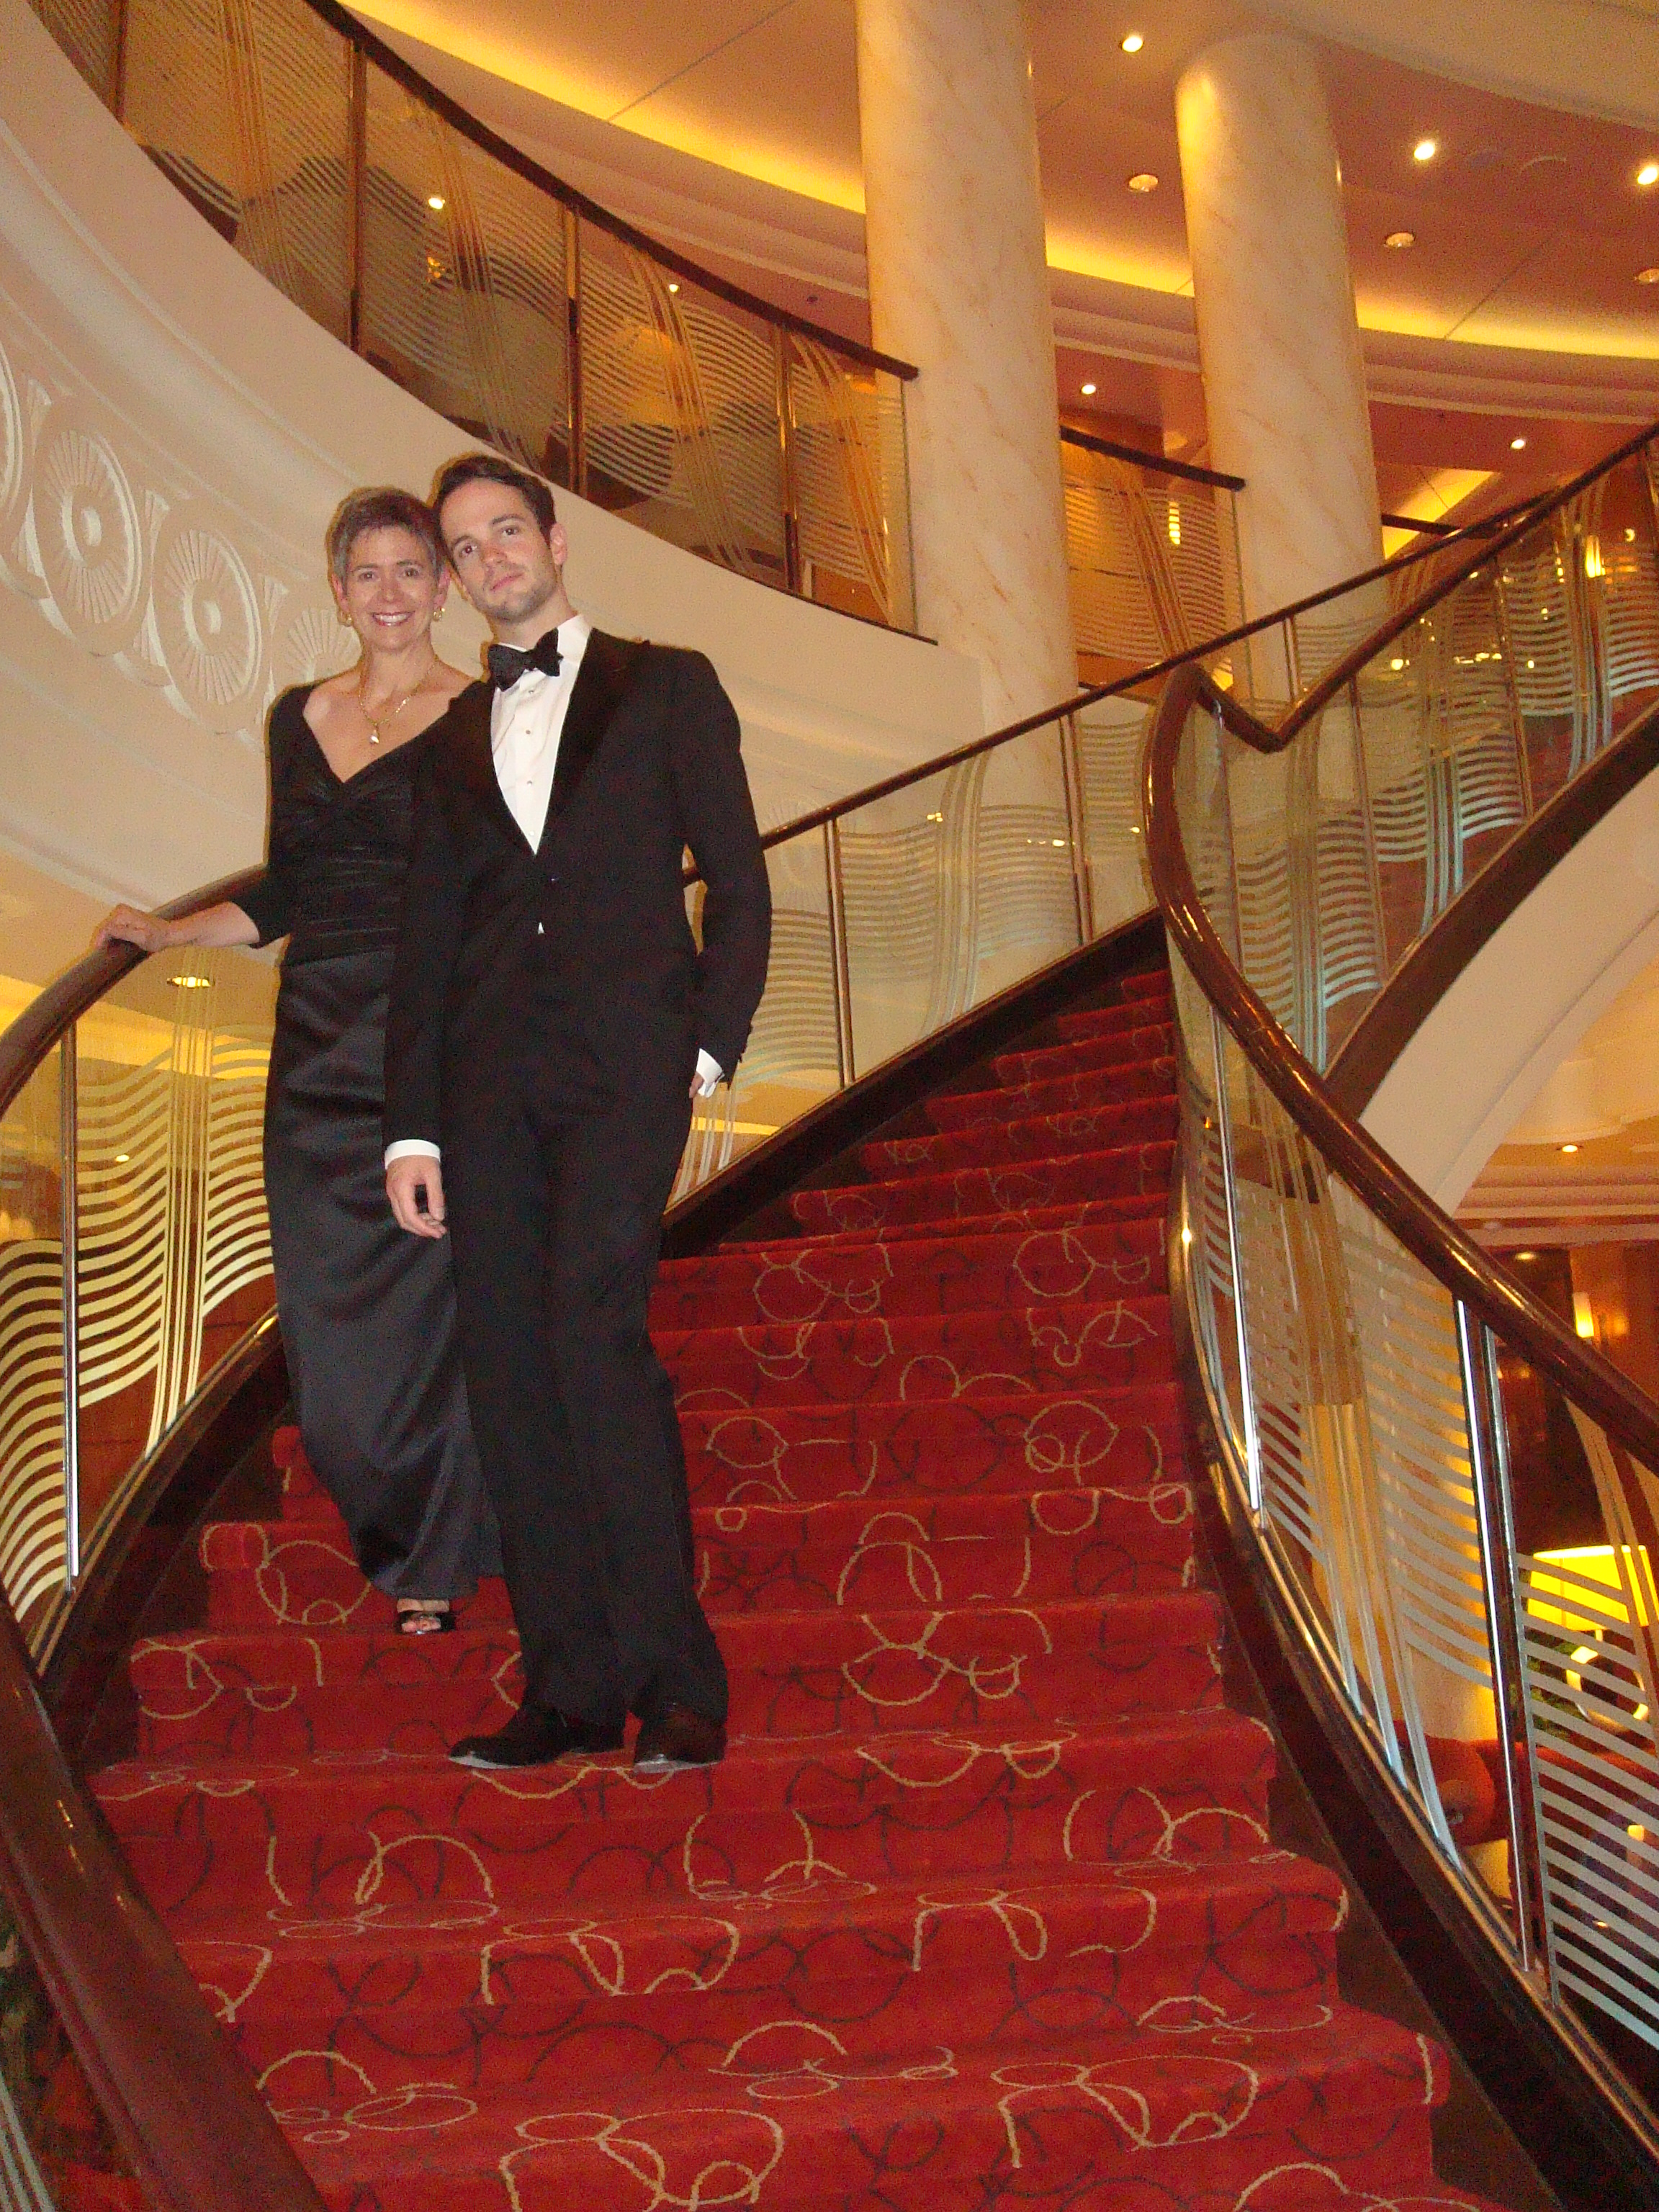 Dressing For Dinner An Eye On Cruise Line Dress Codes The - What to wear on a cruise ship dinner